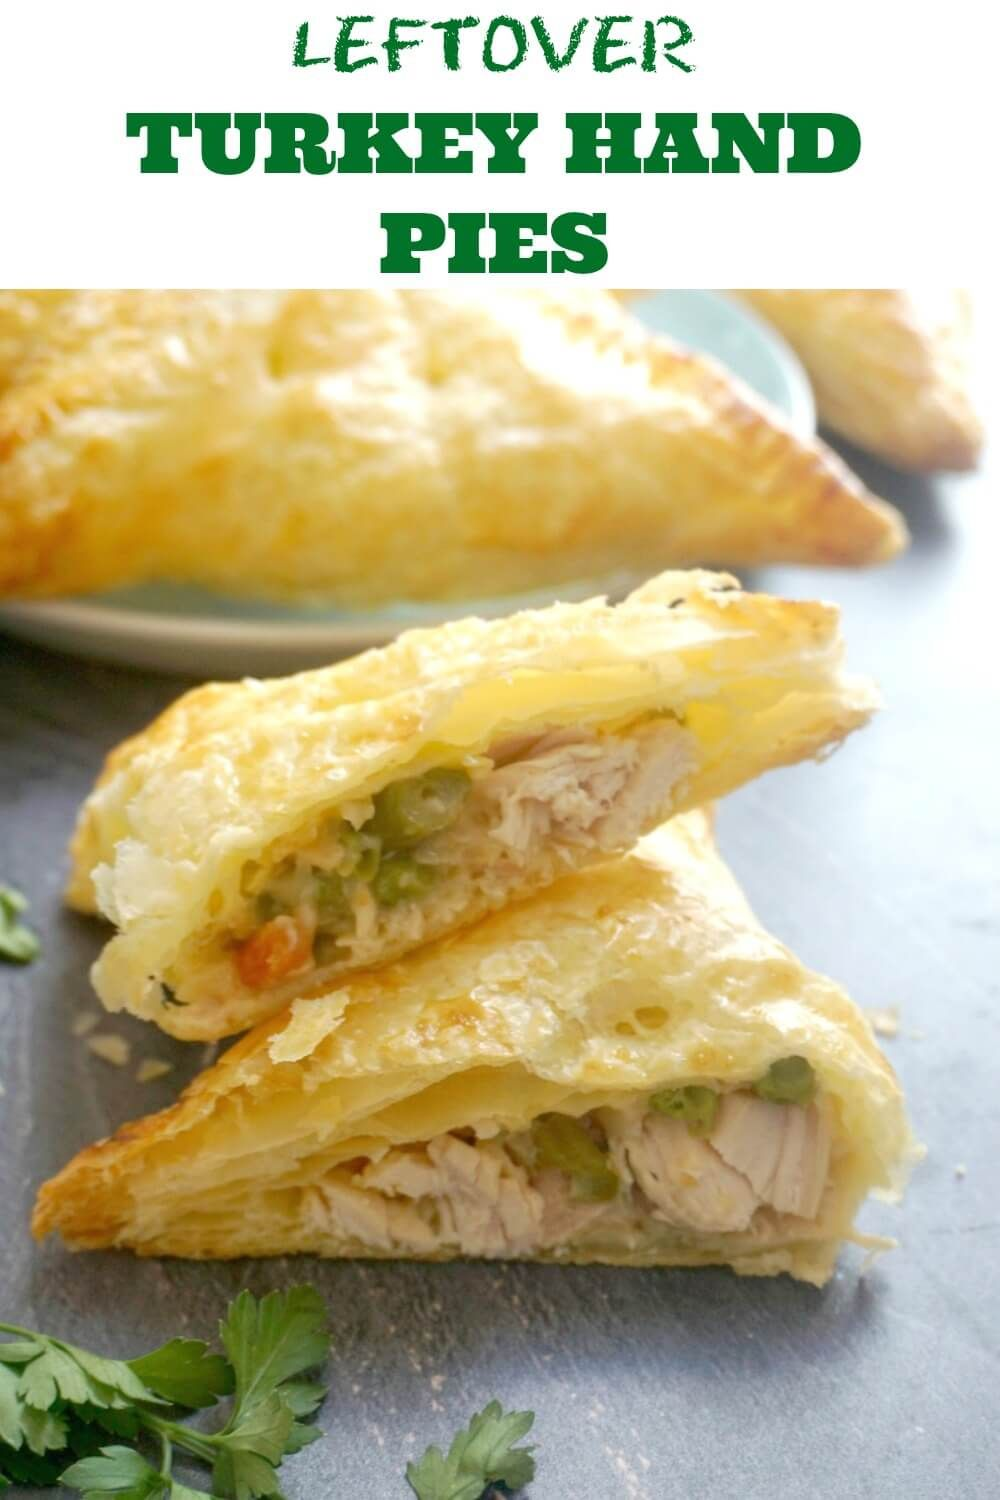 Photo of Leftover Turkey Hand Pies with Puff Pastry